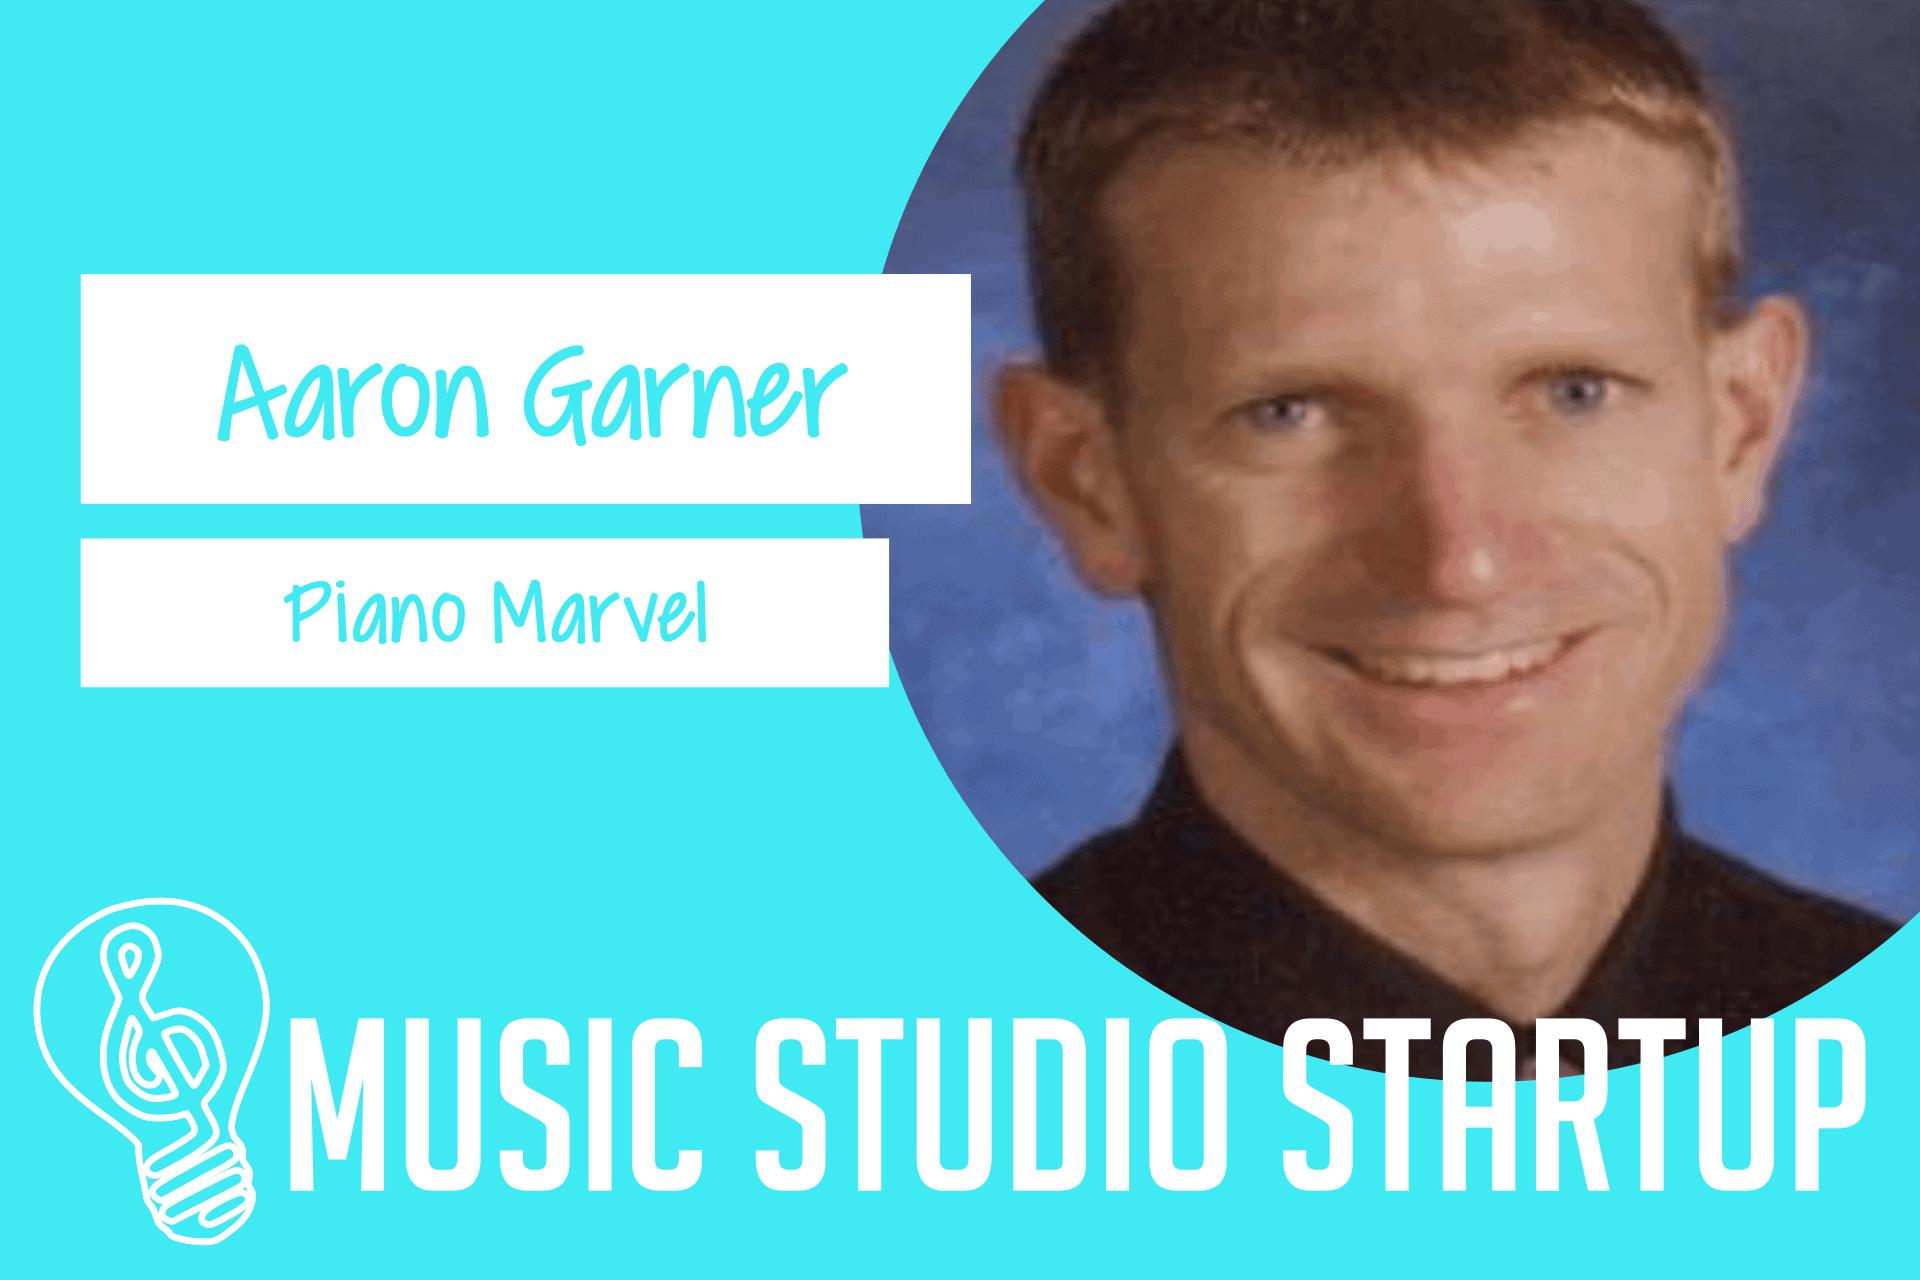 Episode 011 – Aaron Garner of Piano Marvel on Starting a Software Company When You're Not a Developer